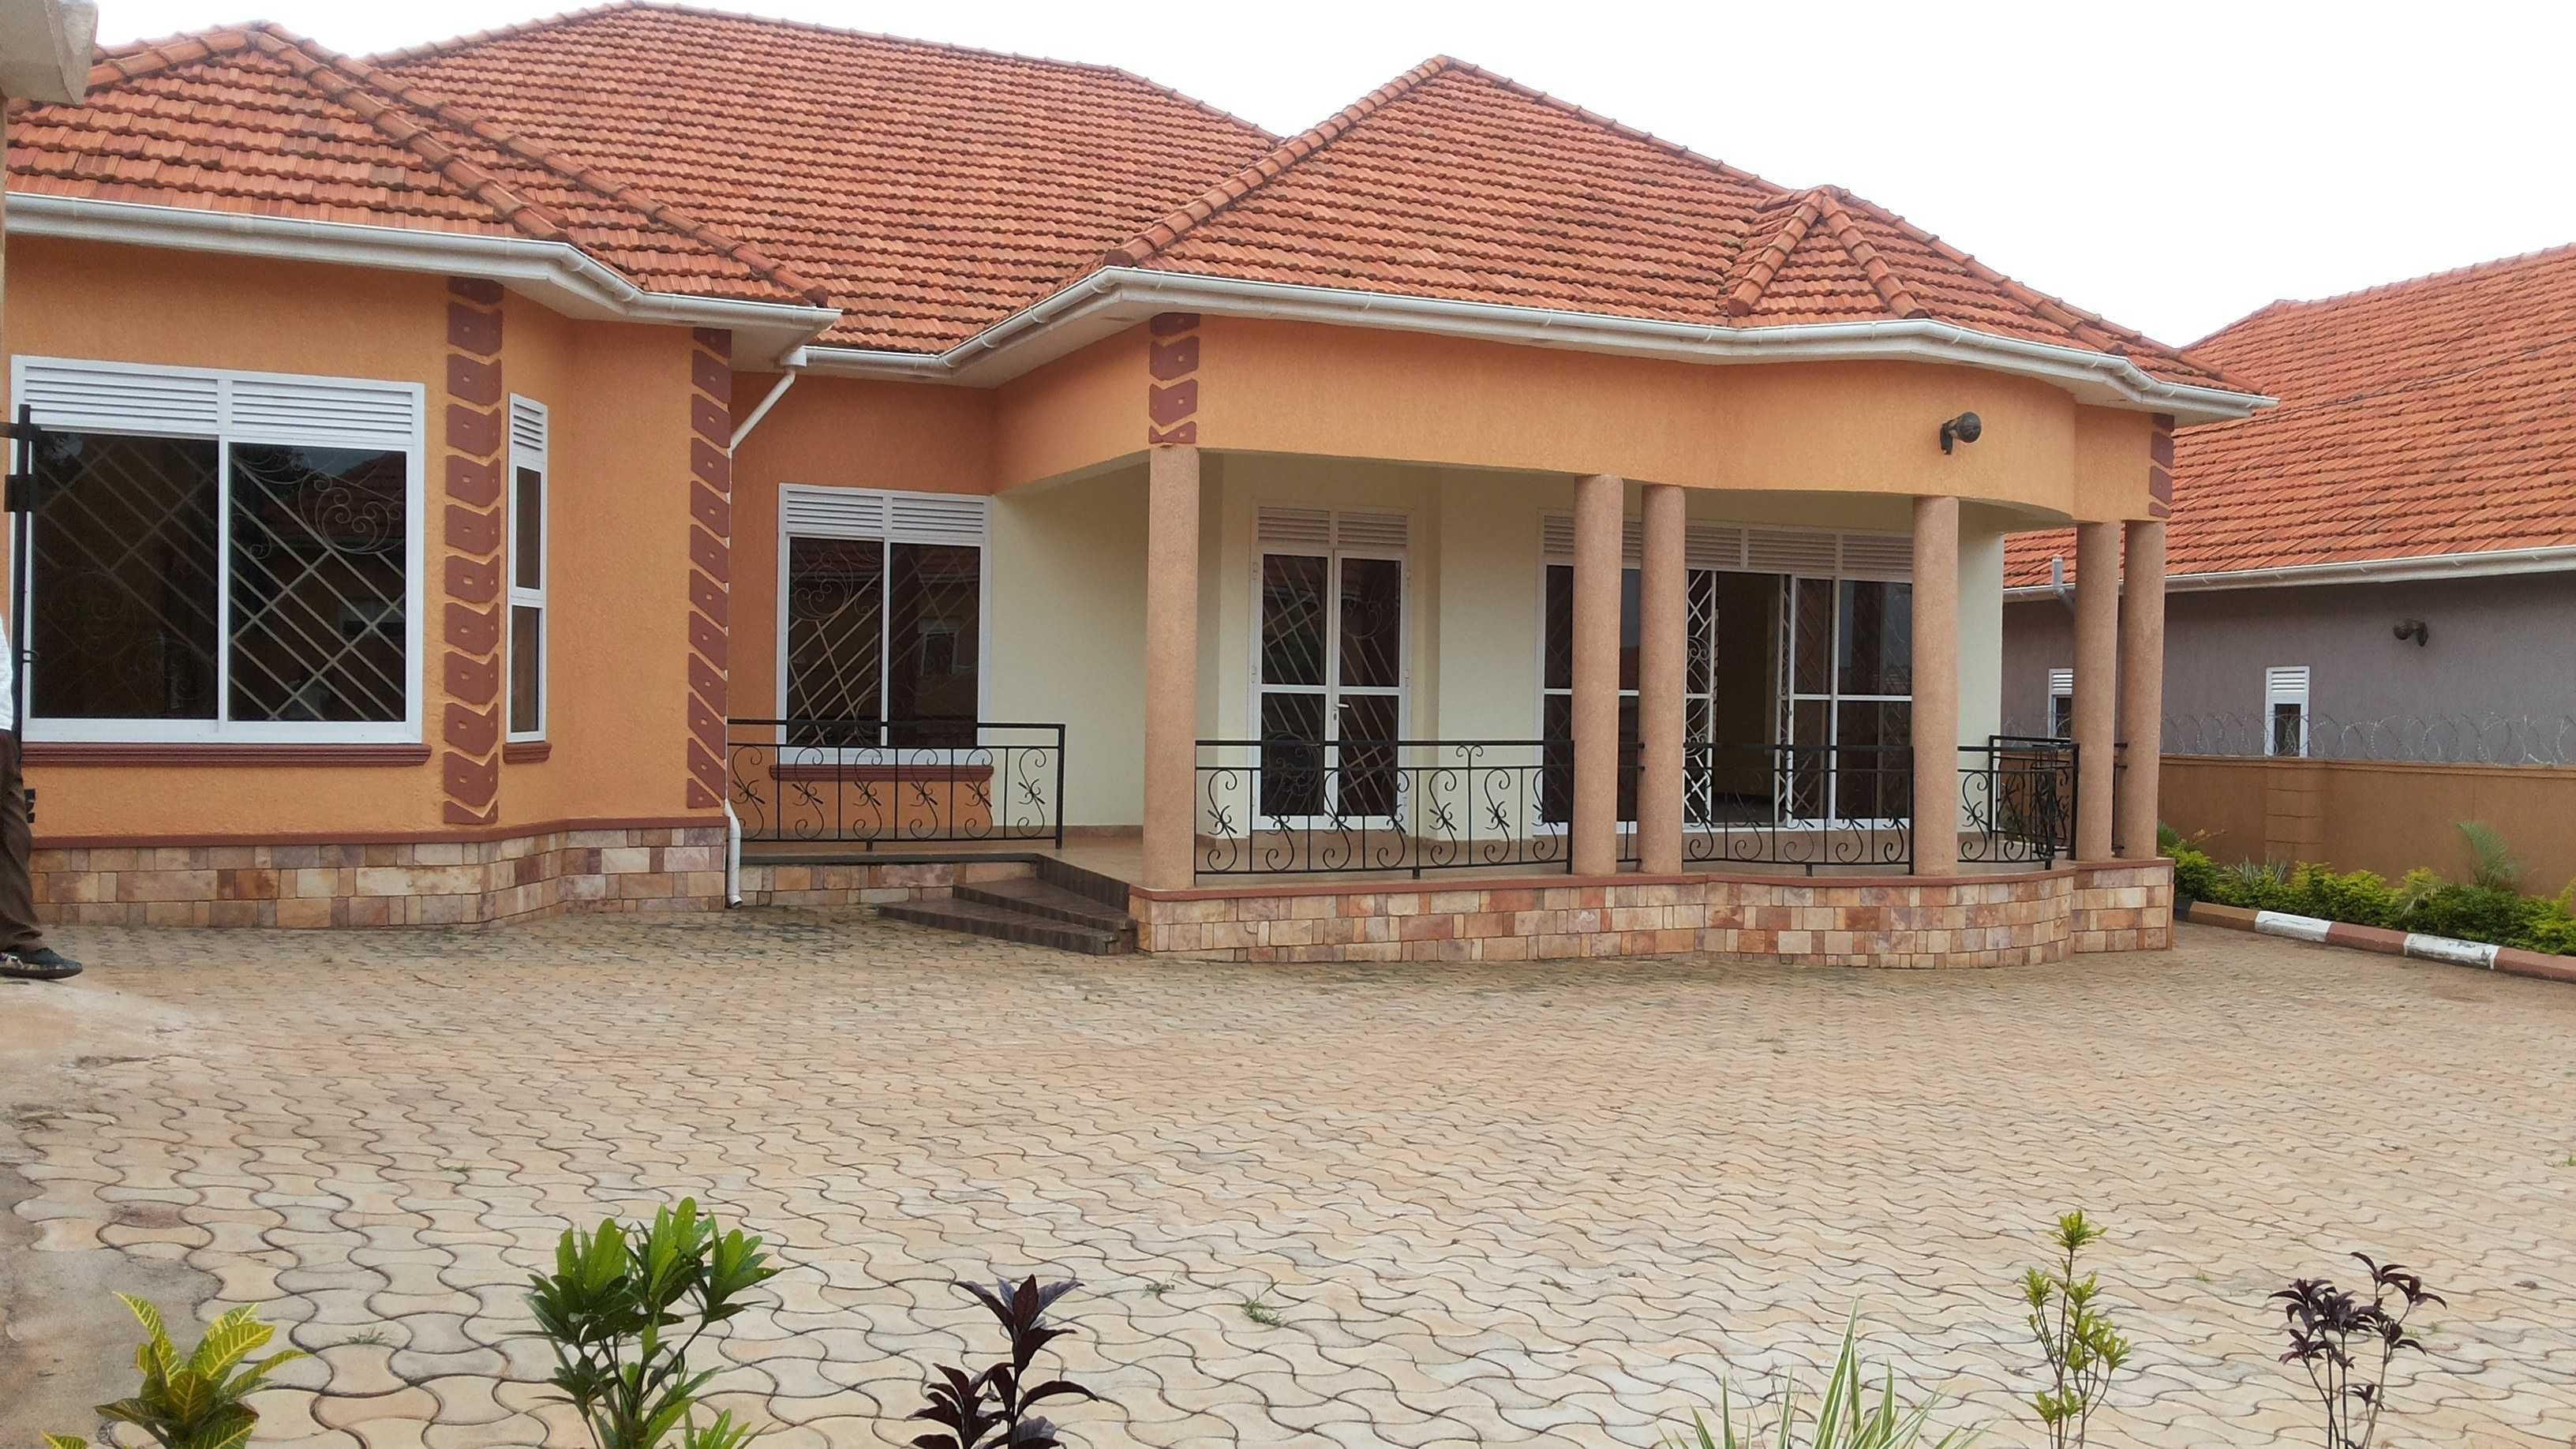 4 Bedroom House Plans In Uganda New Of Residential Houses In Uganda House And Home Beautiful House Plans 4 Bedroom House Plans Bedroom House Plans